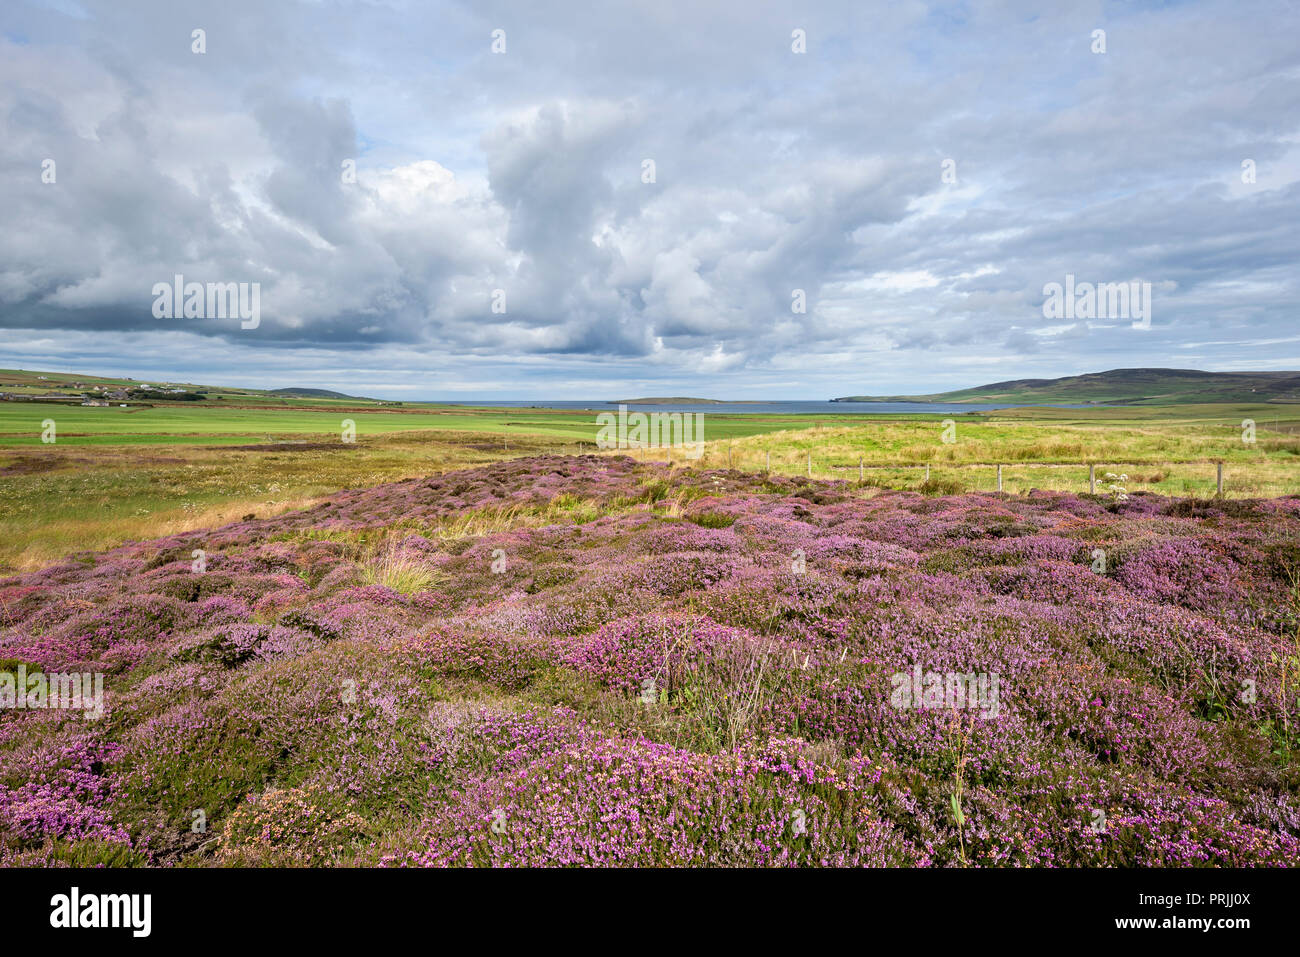 Flowering Heather (Calluna vulgaris), Orkney Islands, Scotland, United Kingdom - Stock Image